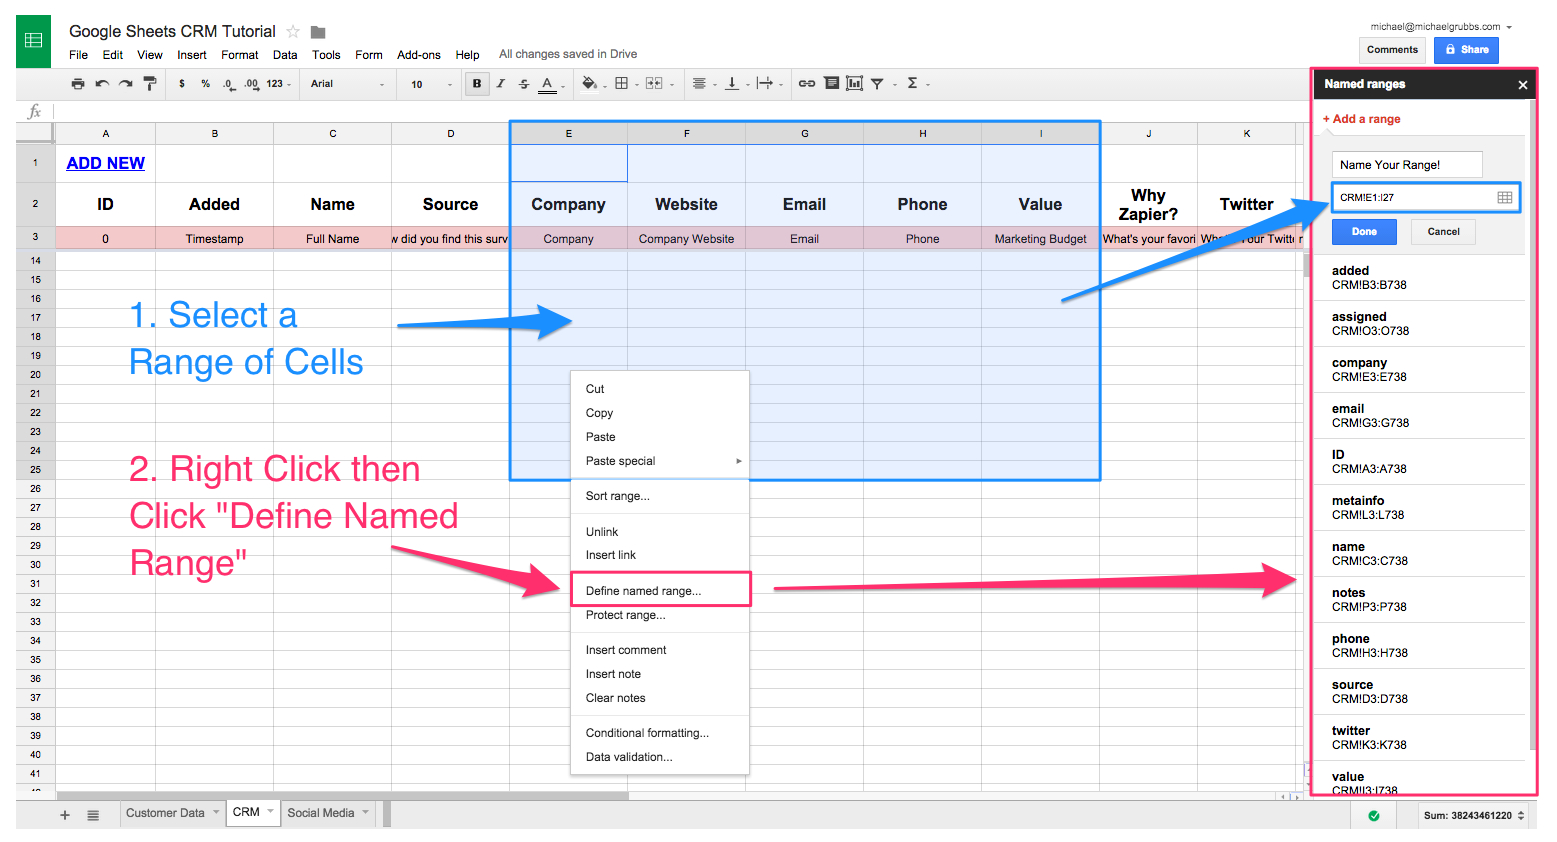 Creating Excel Spreadsheet Templates With Spreadsheet Crm: How To Create A Customizable Crm With Google Sheets